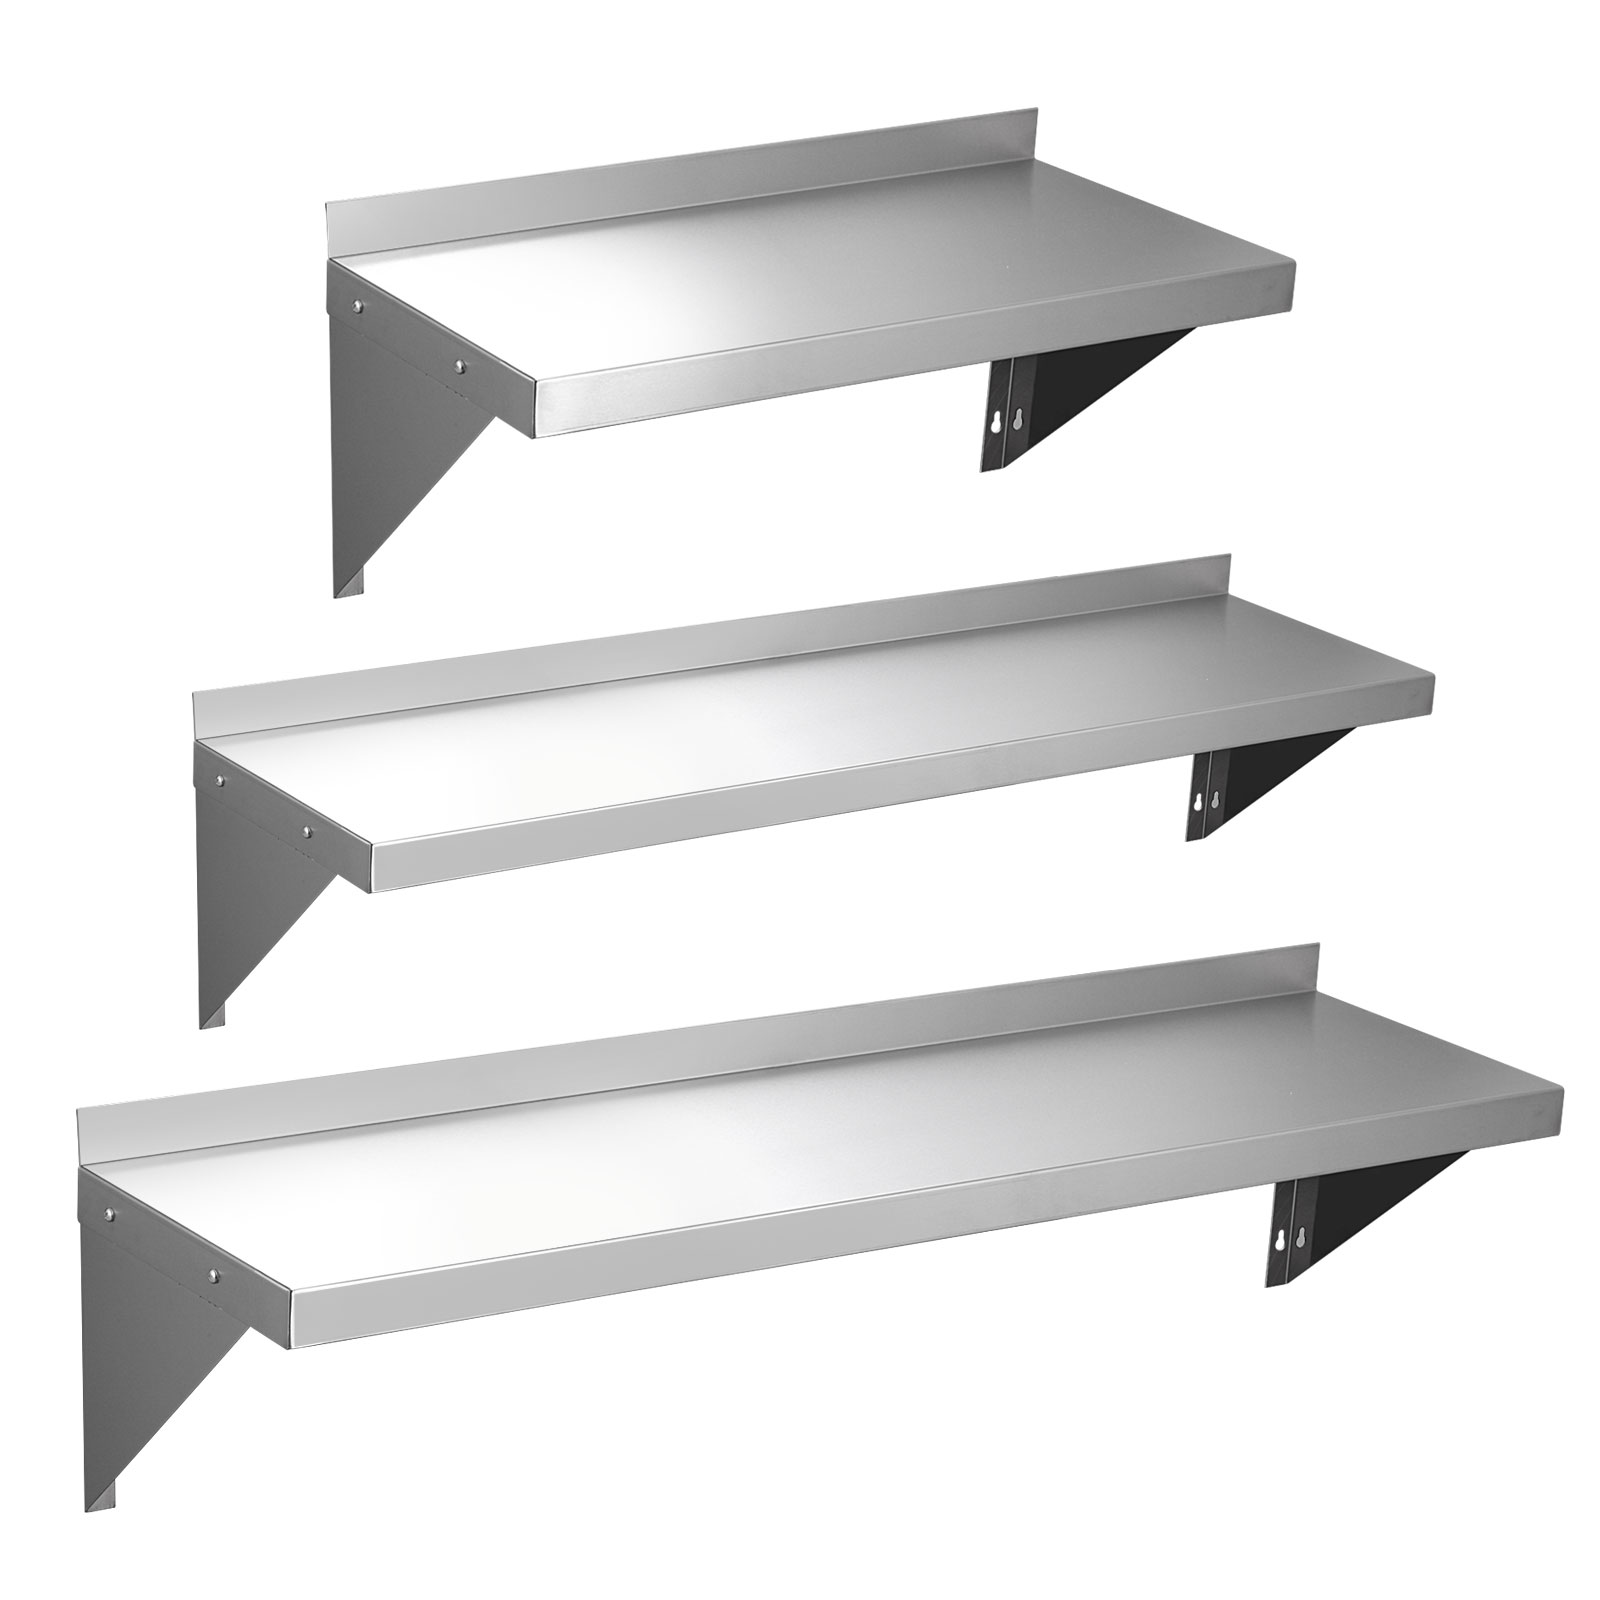 600 900 1200mm Stainless Steel Wall Shelf With Brackets Mounted Kitchen Shelves Ebay